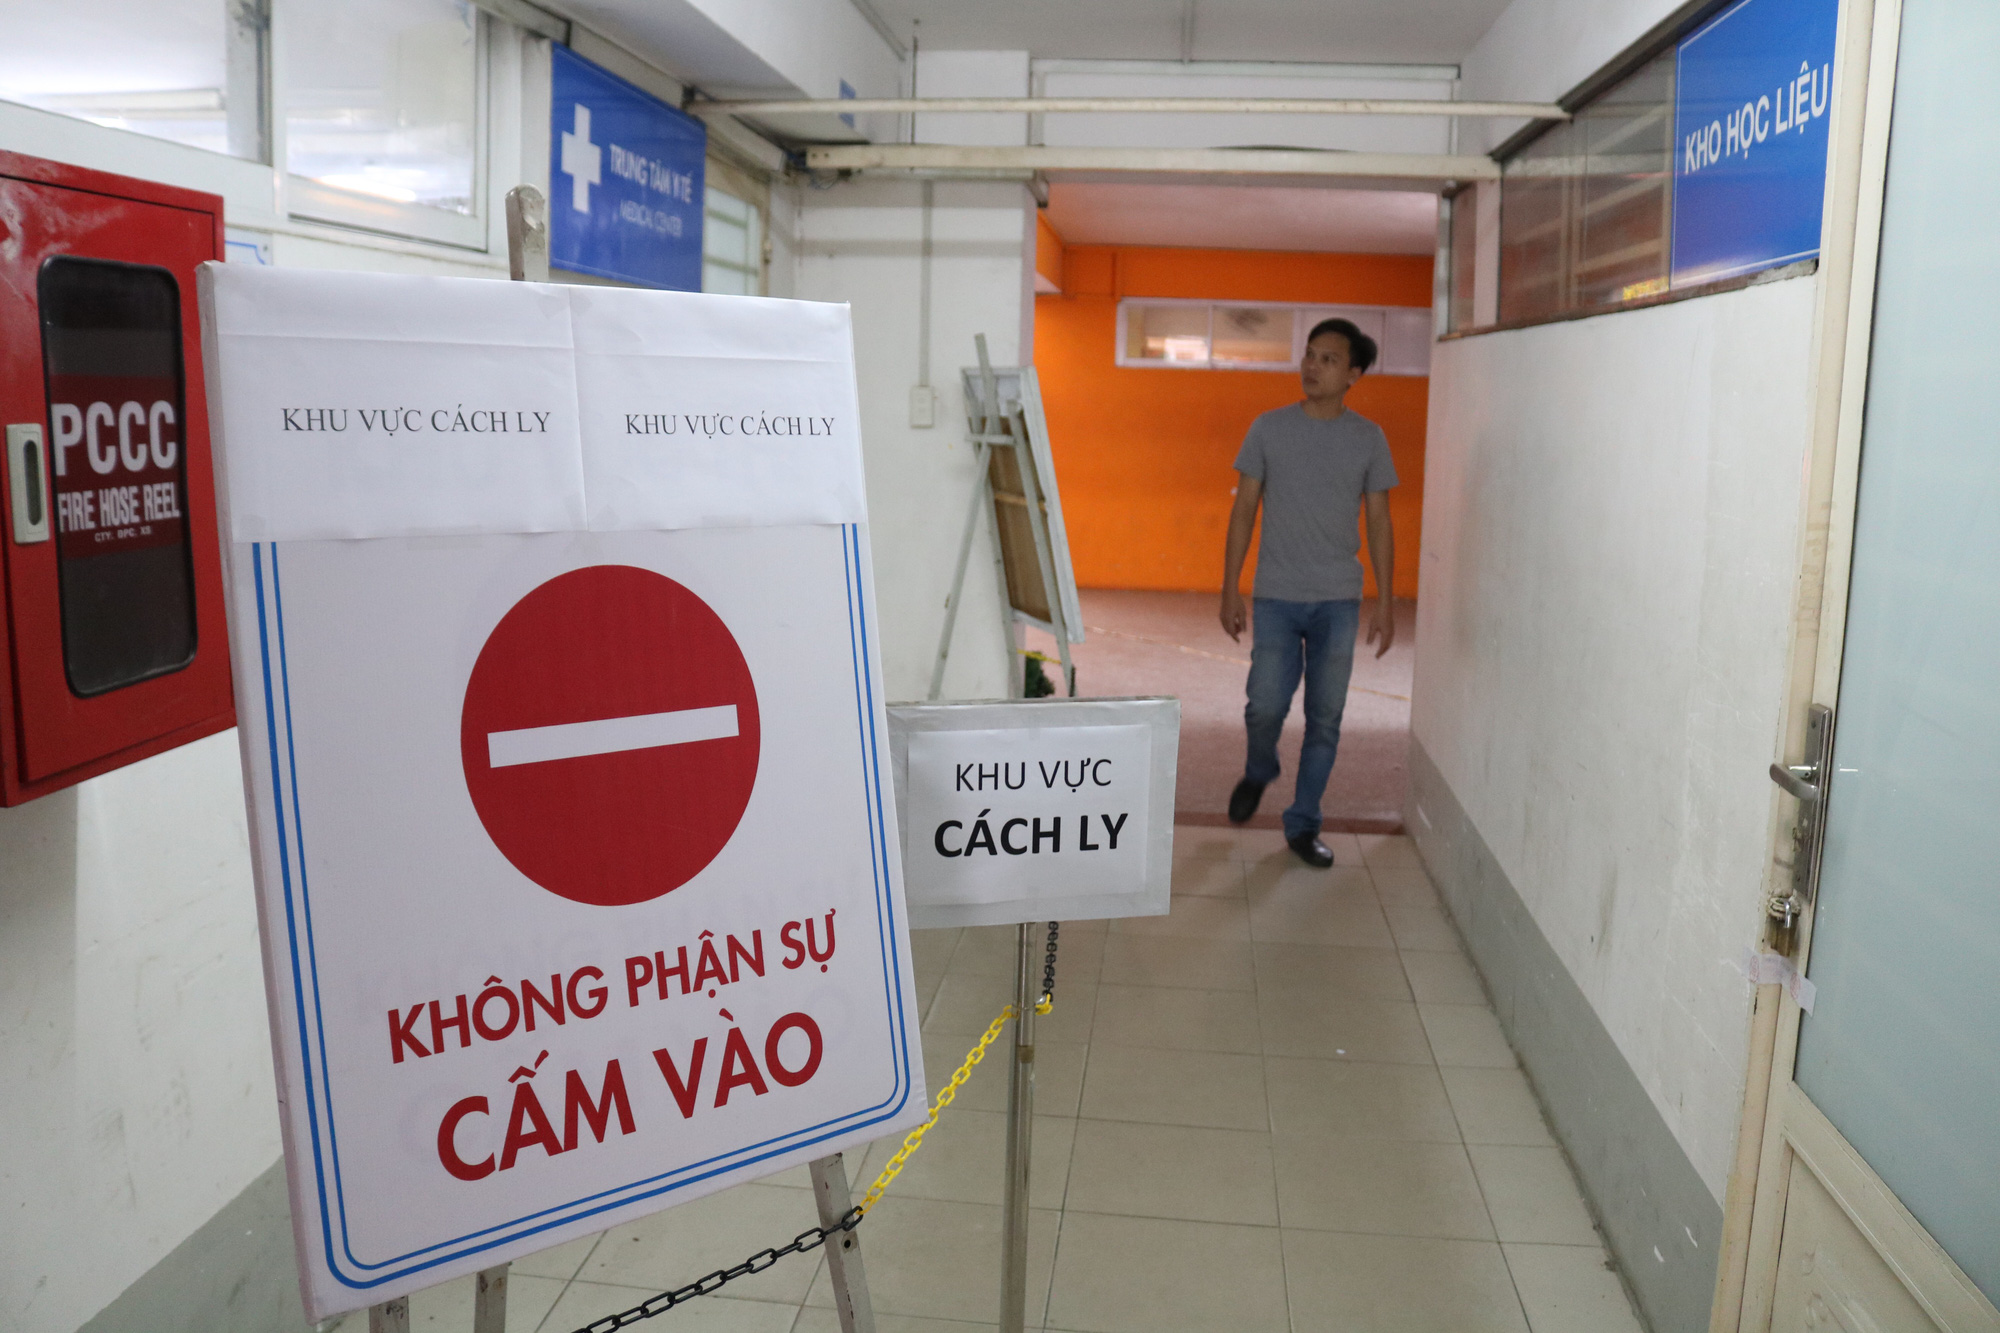 A quarantine area is established at the Ho Chi Minh City University of Technology. Photo: Ngoc Phuong / Tuoi Tre